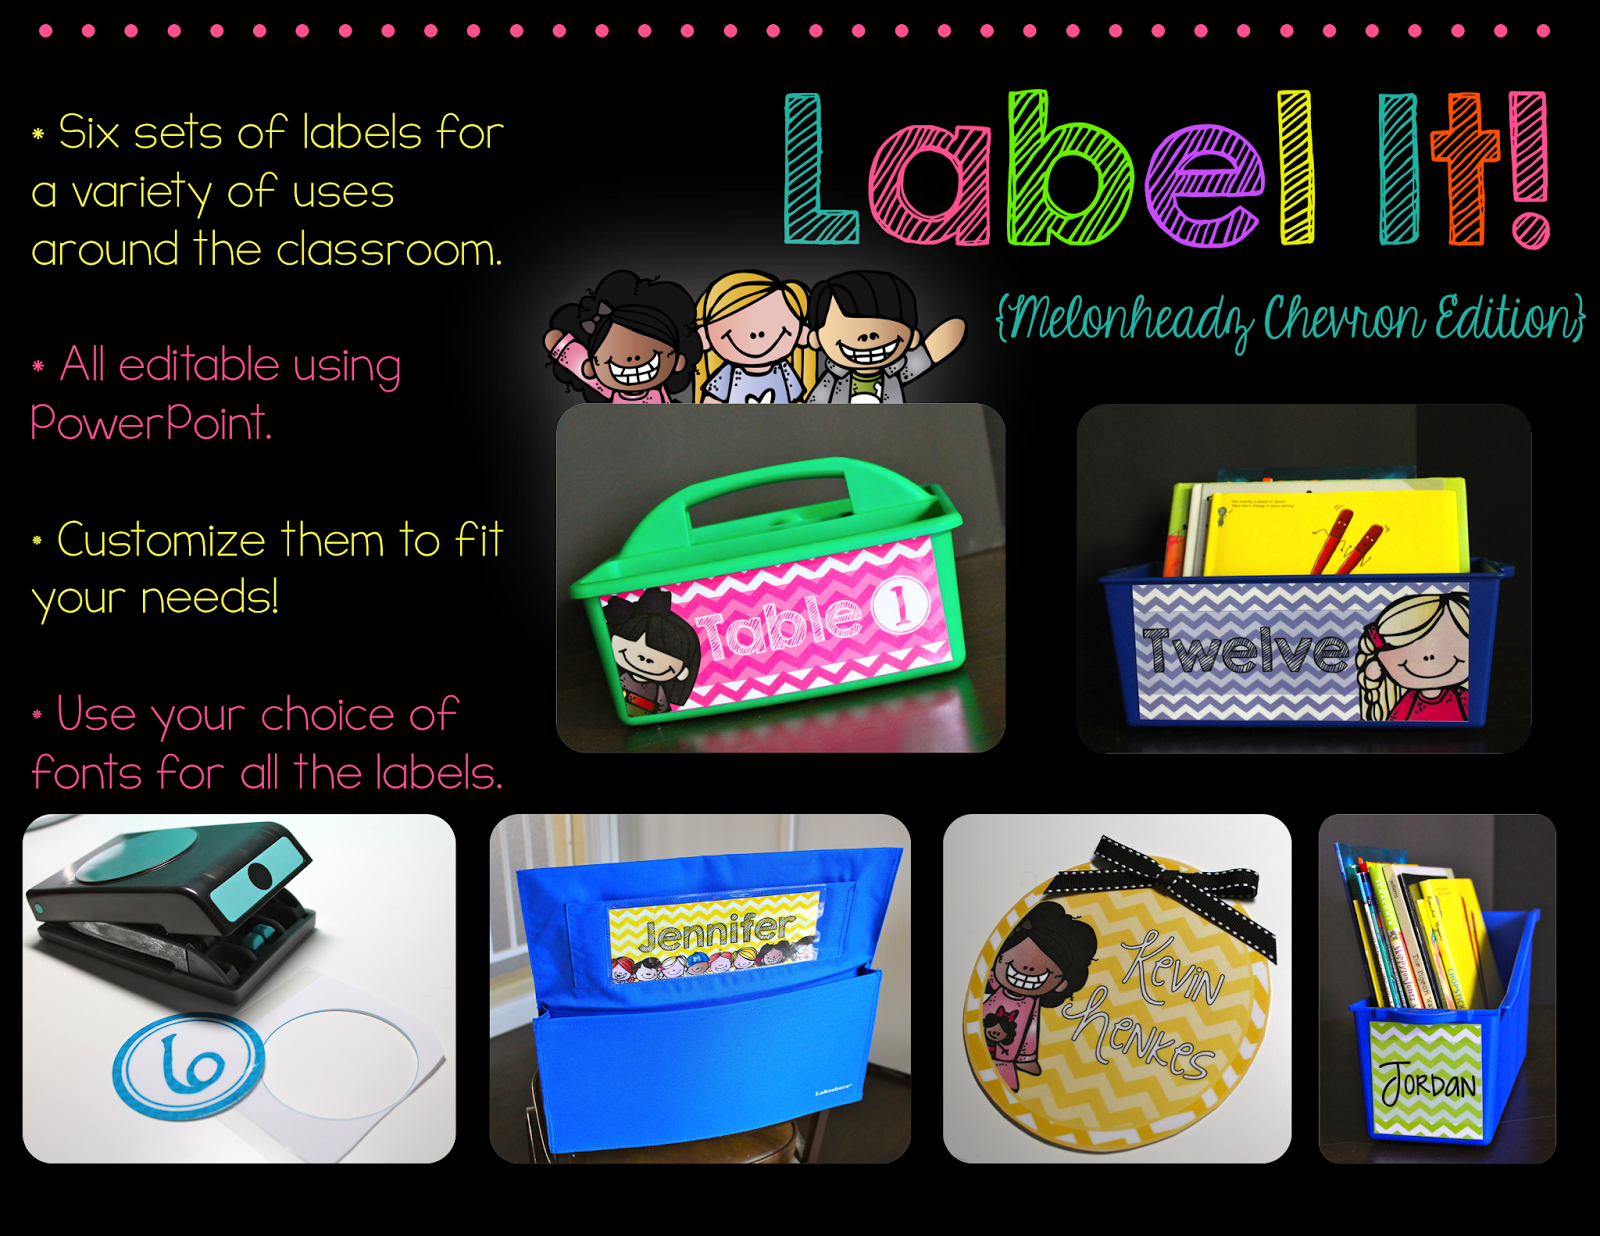 http://www.teacherspayteachers.com/Product/Label-It-Melonheadz-Chevron-Edition-Editable-Classroom-Labels-1370048